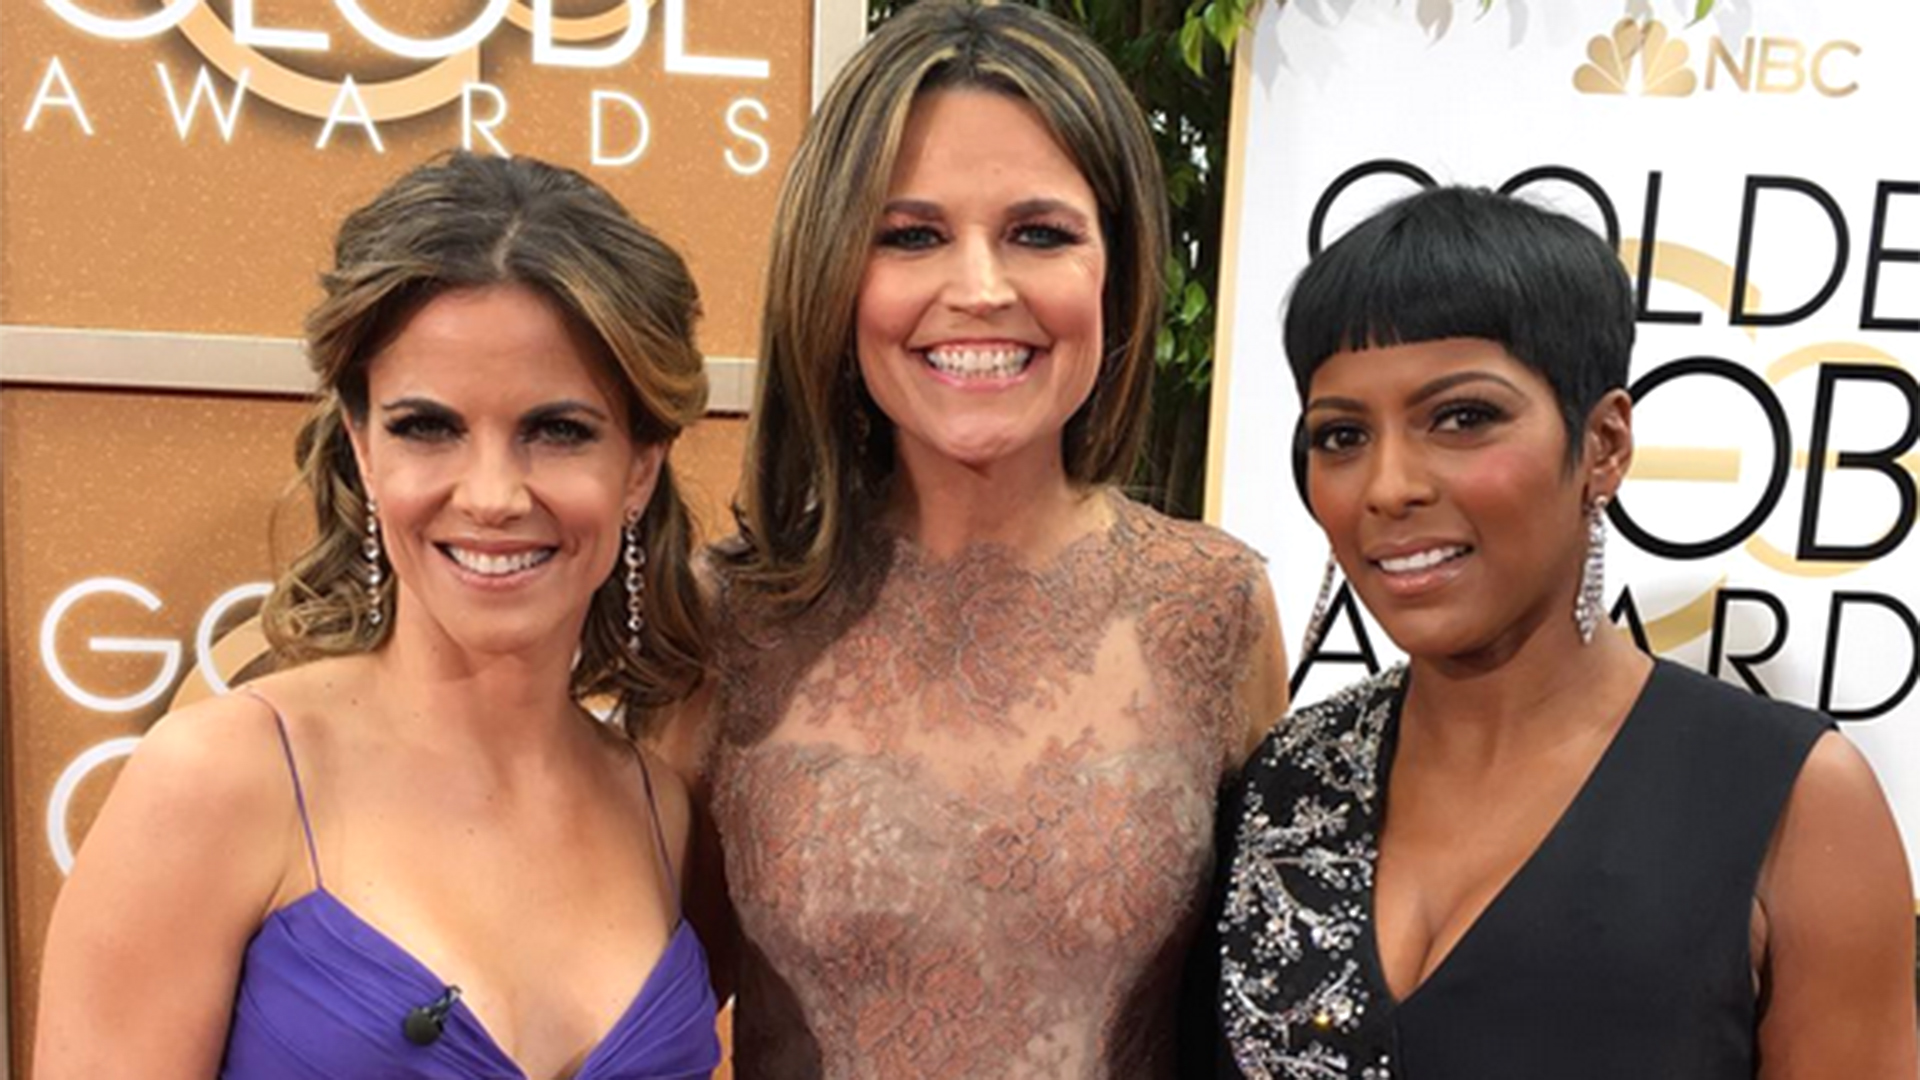 Today Show At The 2016 Golden Globes See Anchors Behind